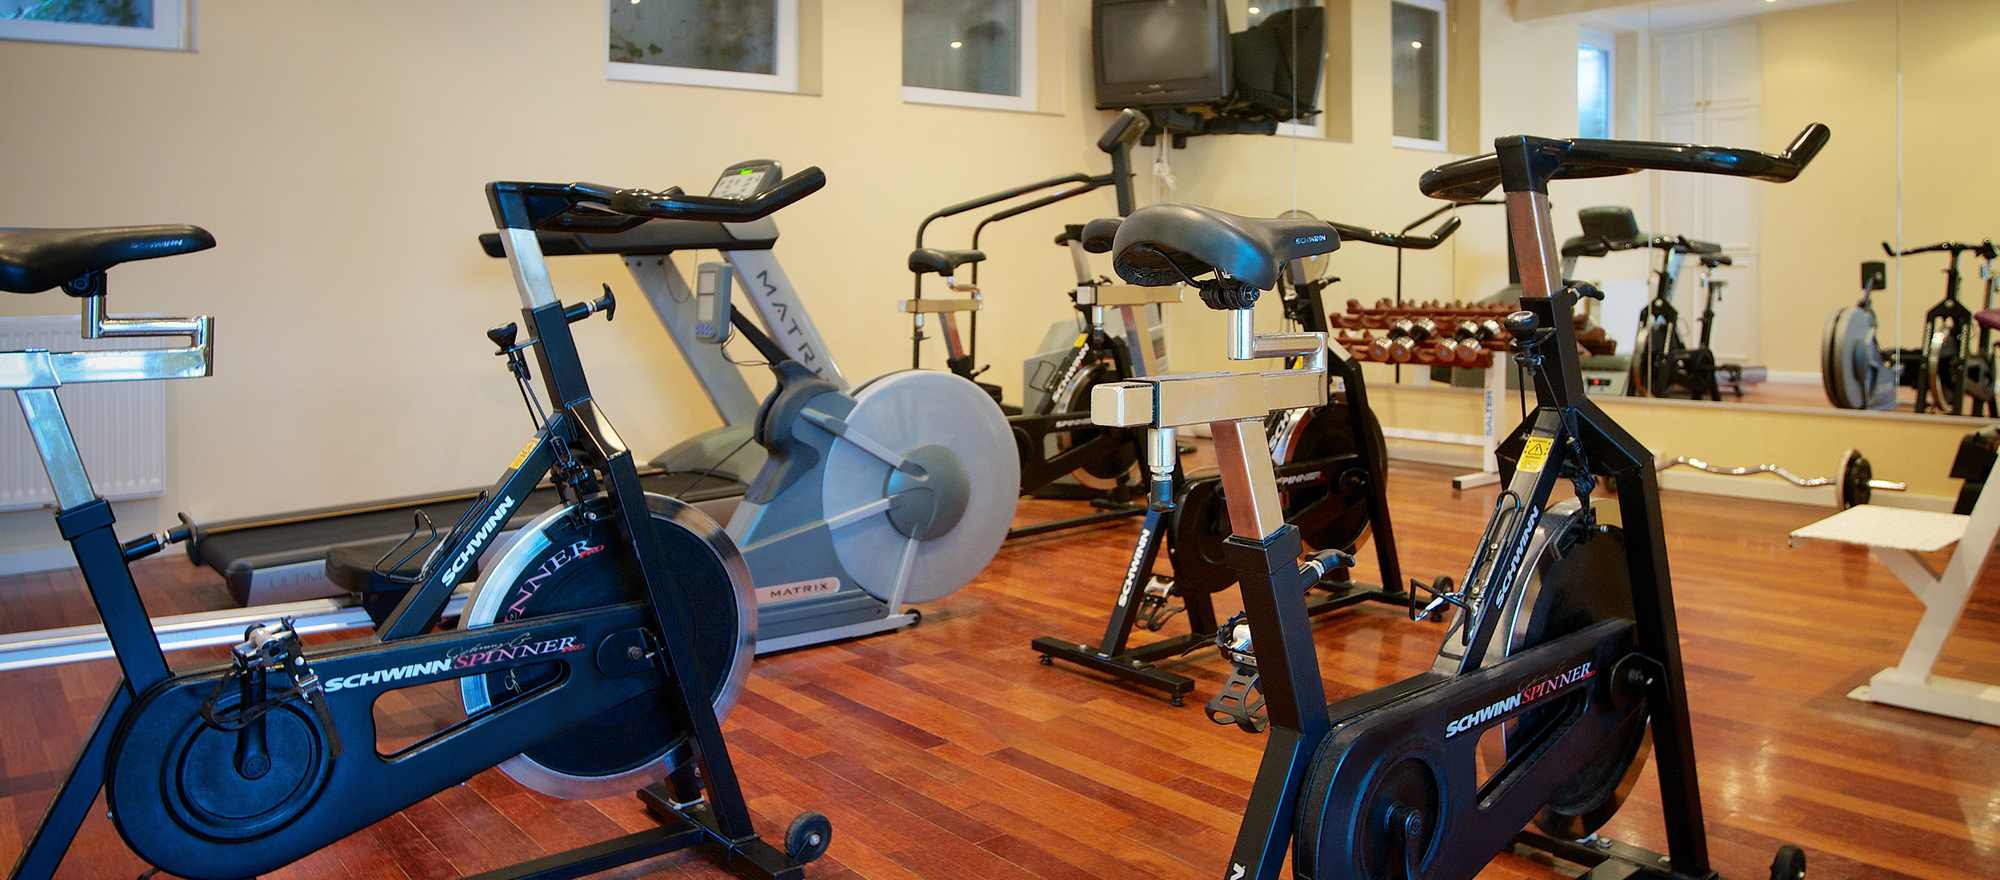 Gym in the Ringhotel Hohe Wacht in Hohwacht, 4-stars superior hotel close to the Baltic Sea